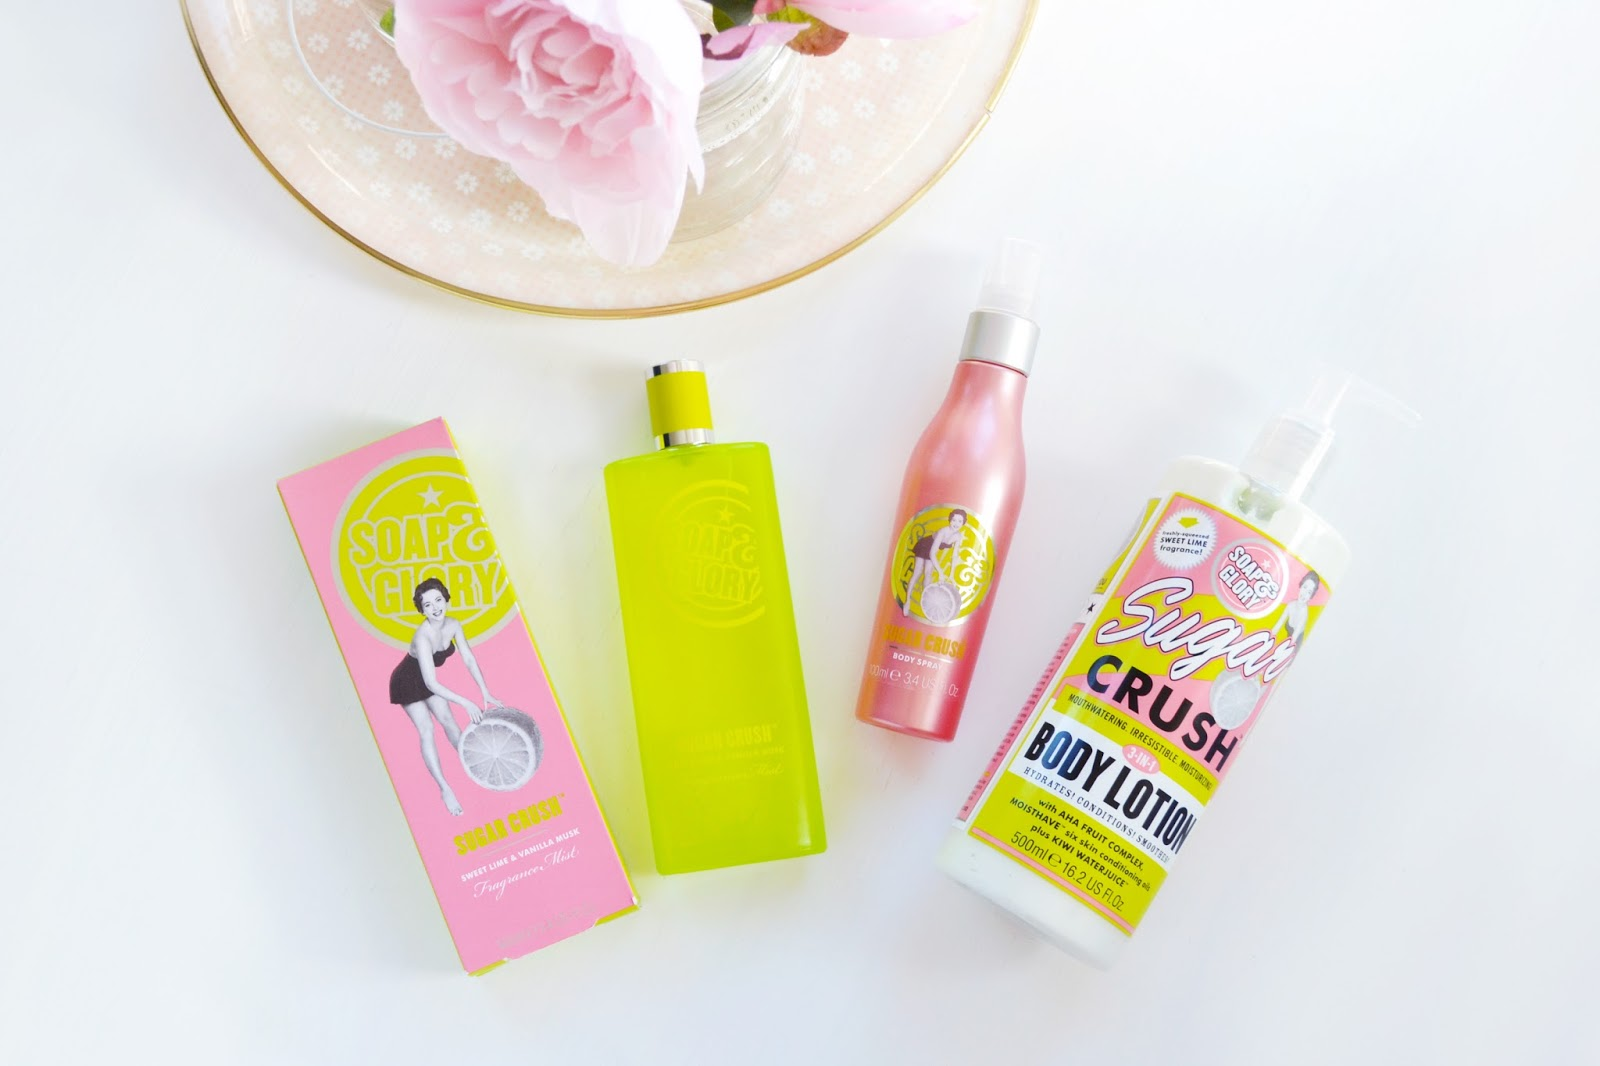 Soap And Glory's new sugar crush products including a fragrance mist